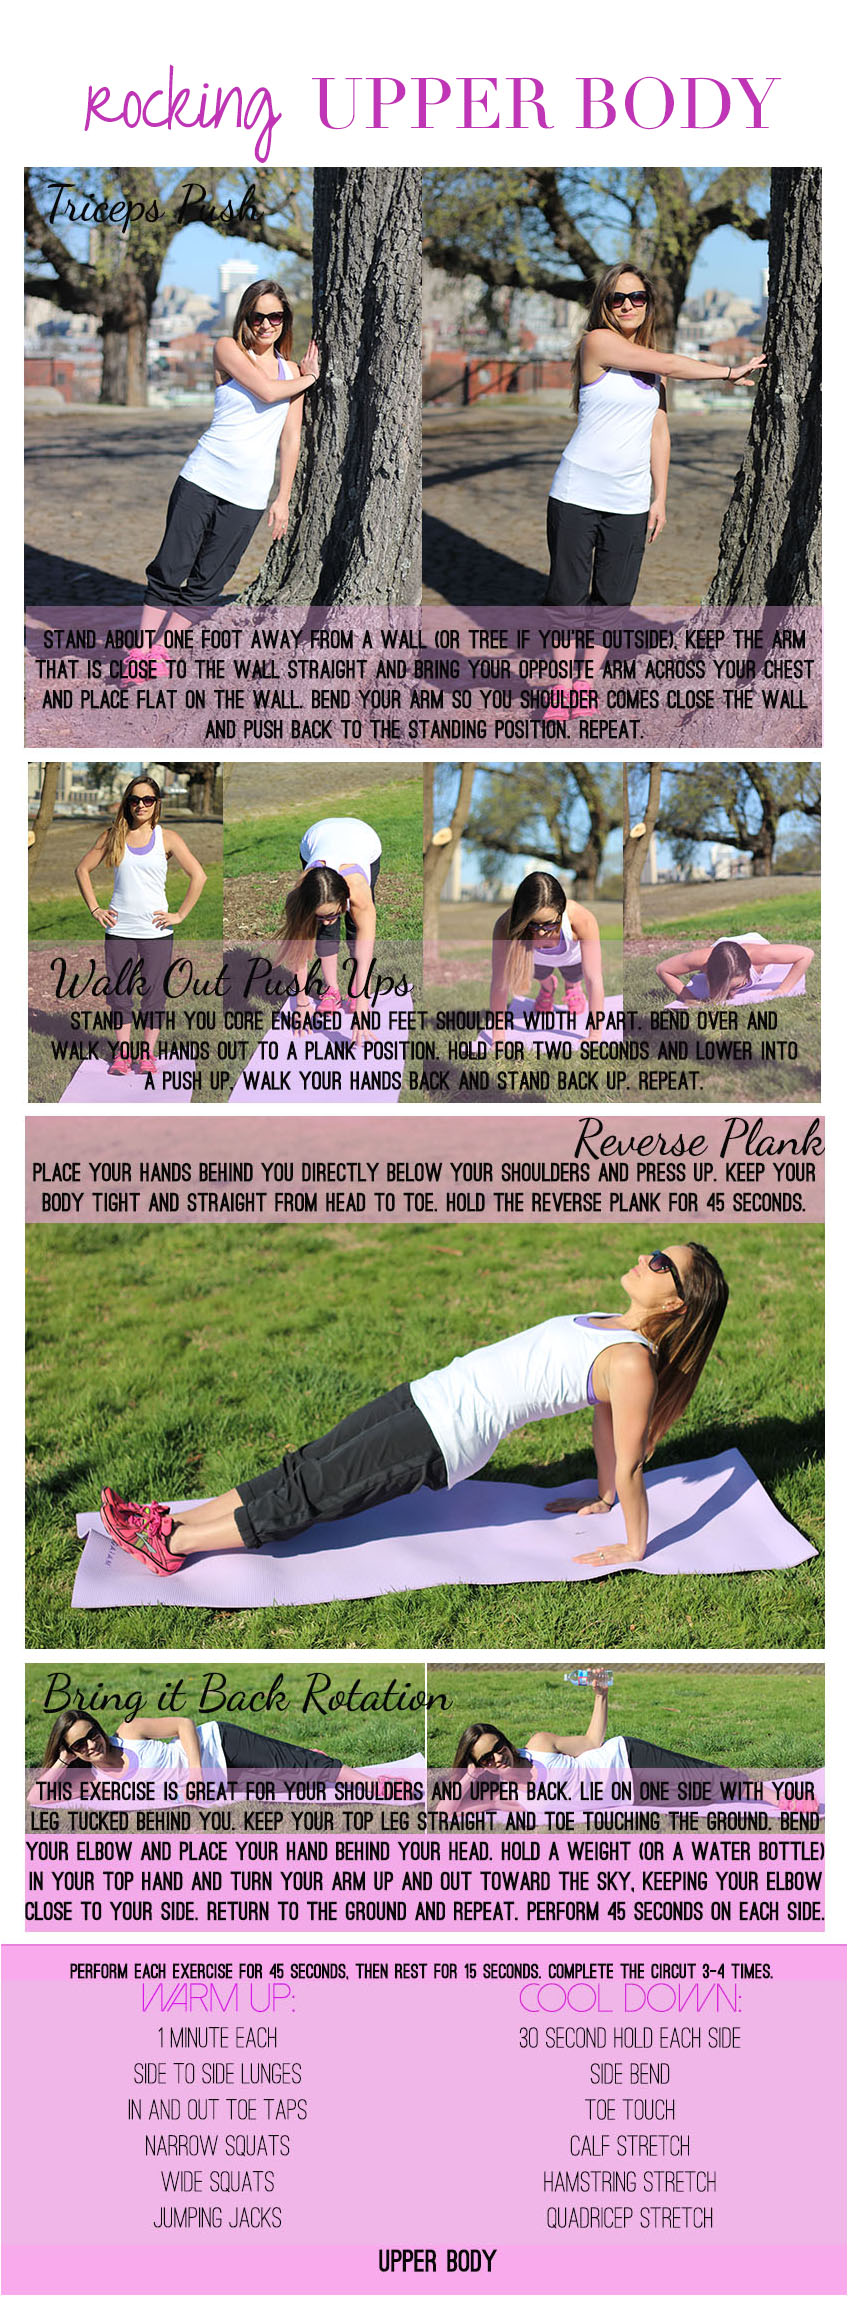 An upper body workout for women - Pumps and Push-Ups